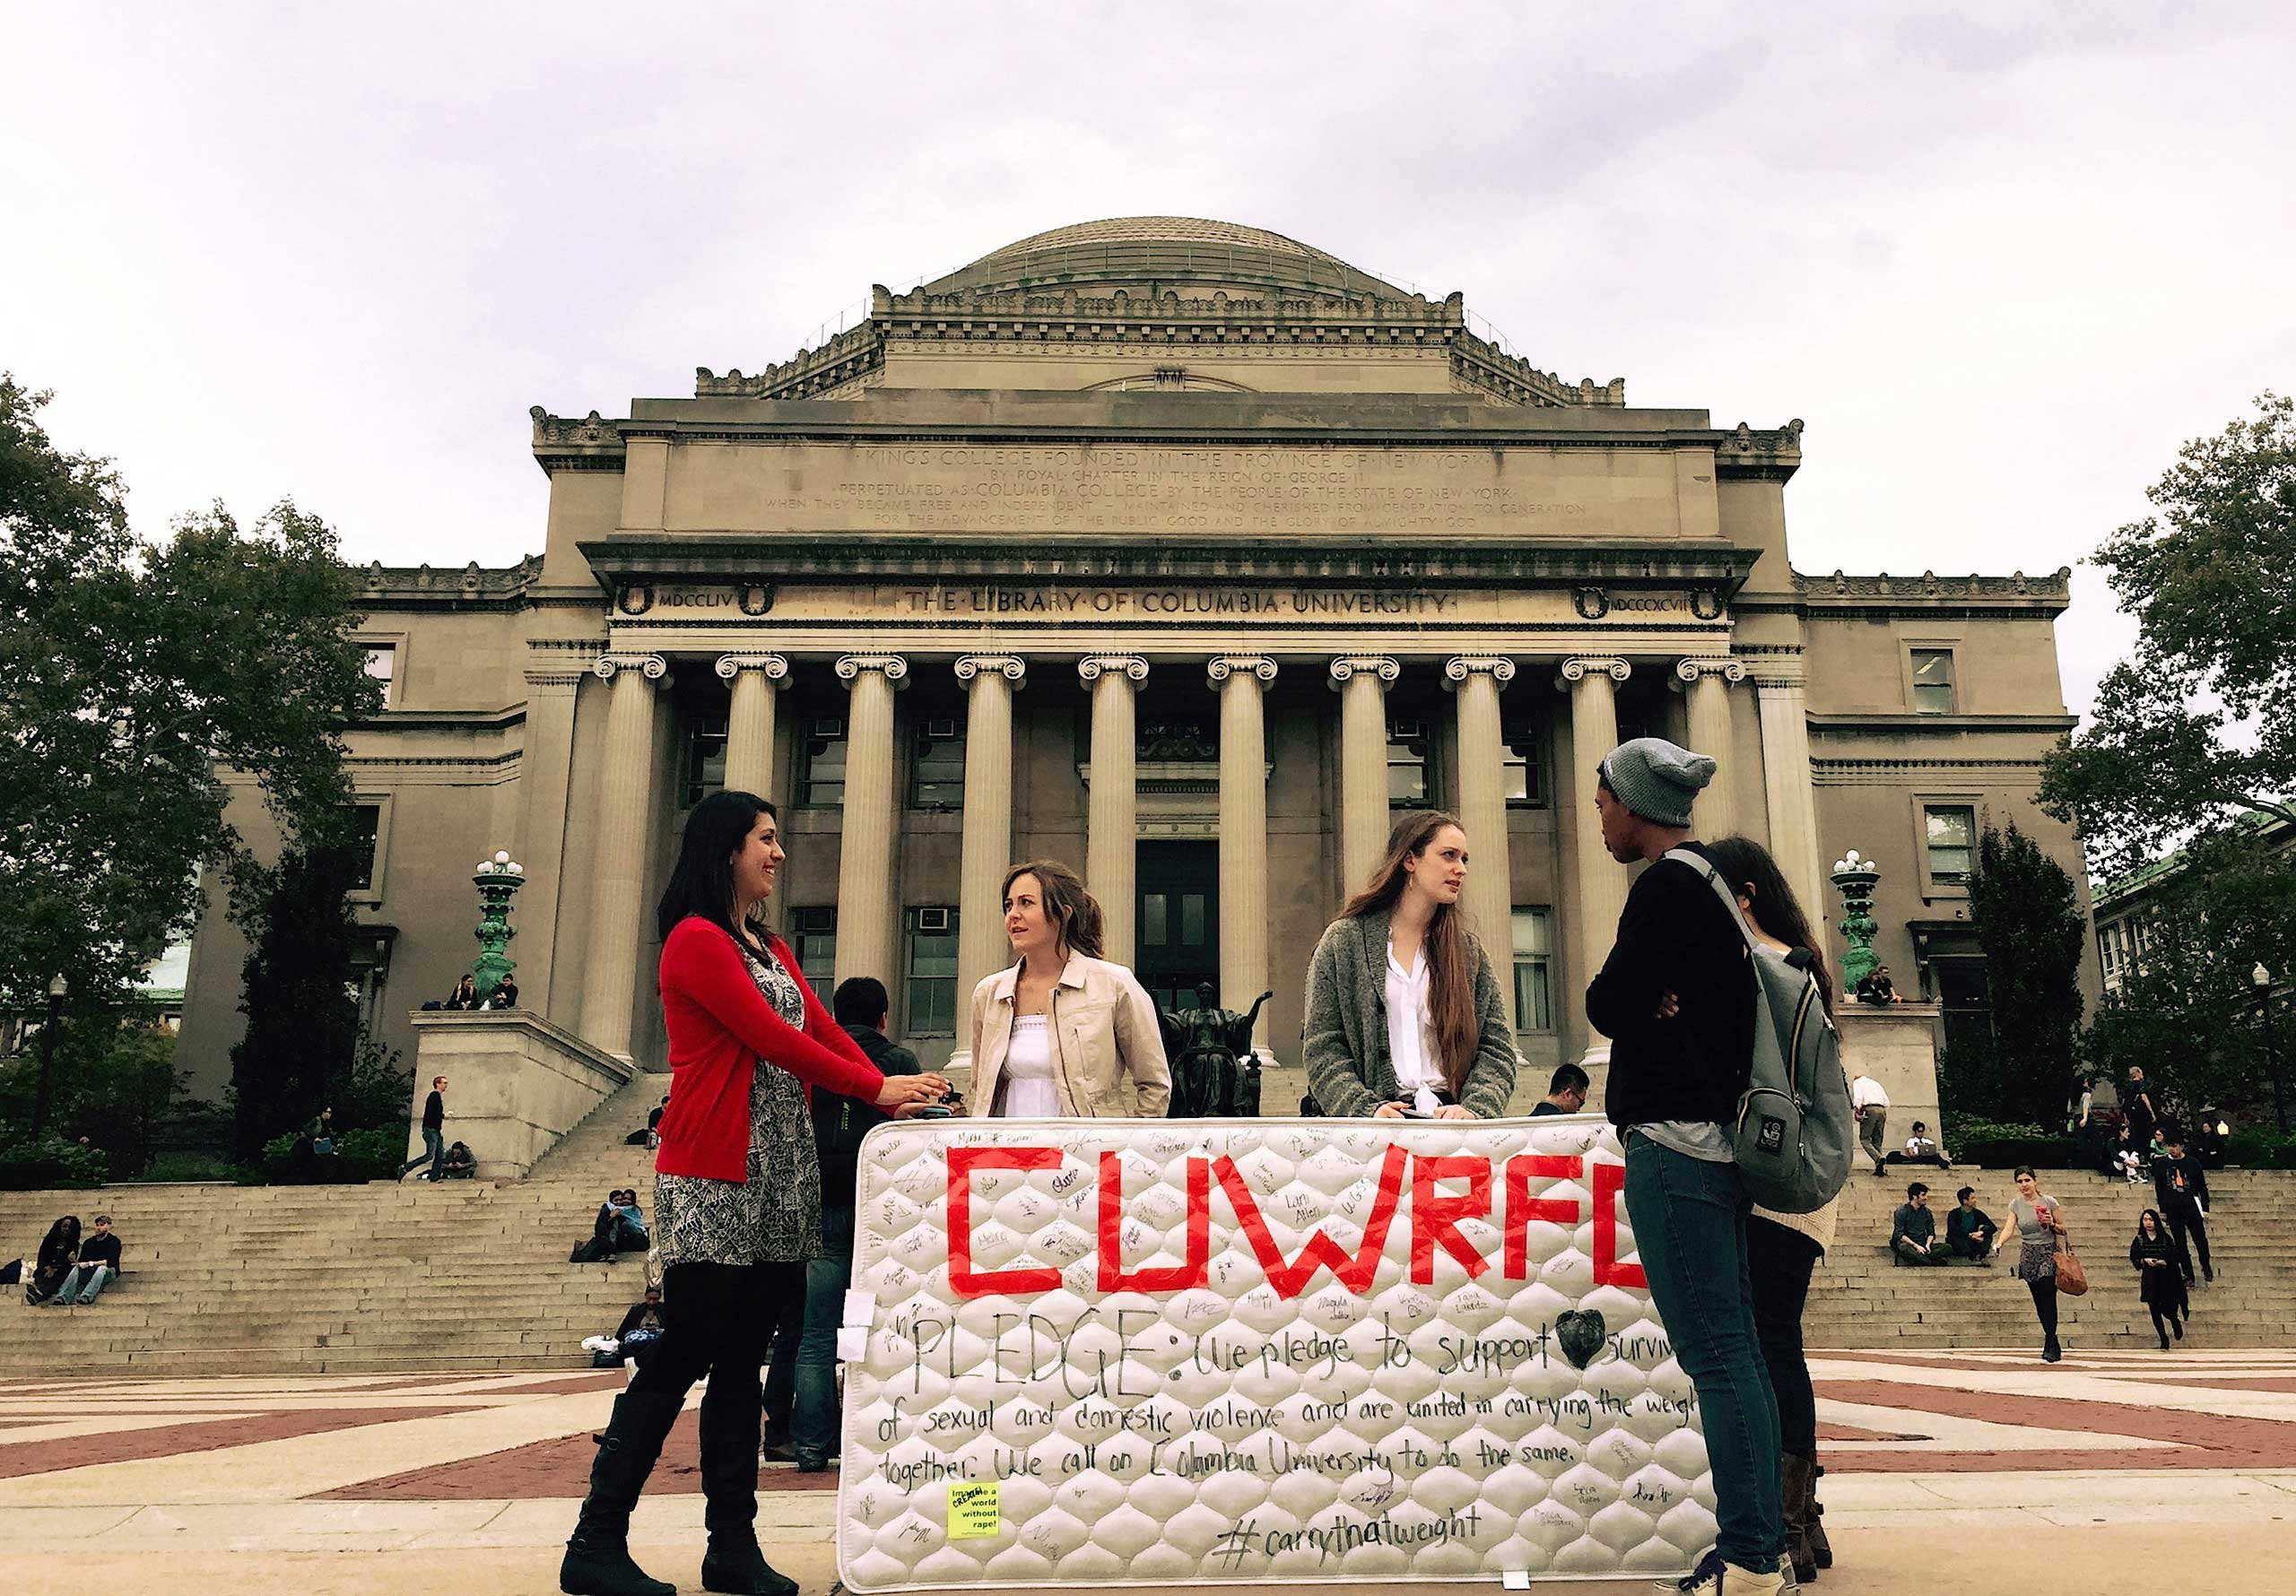 Student protesters stand in front of the Library of Columbia University, New York, Oct. 29, 2014.